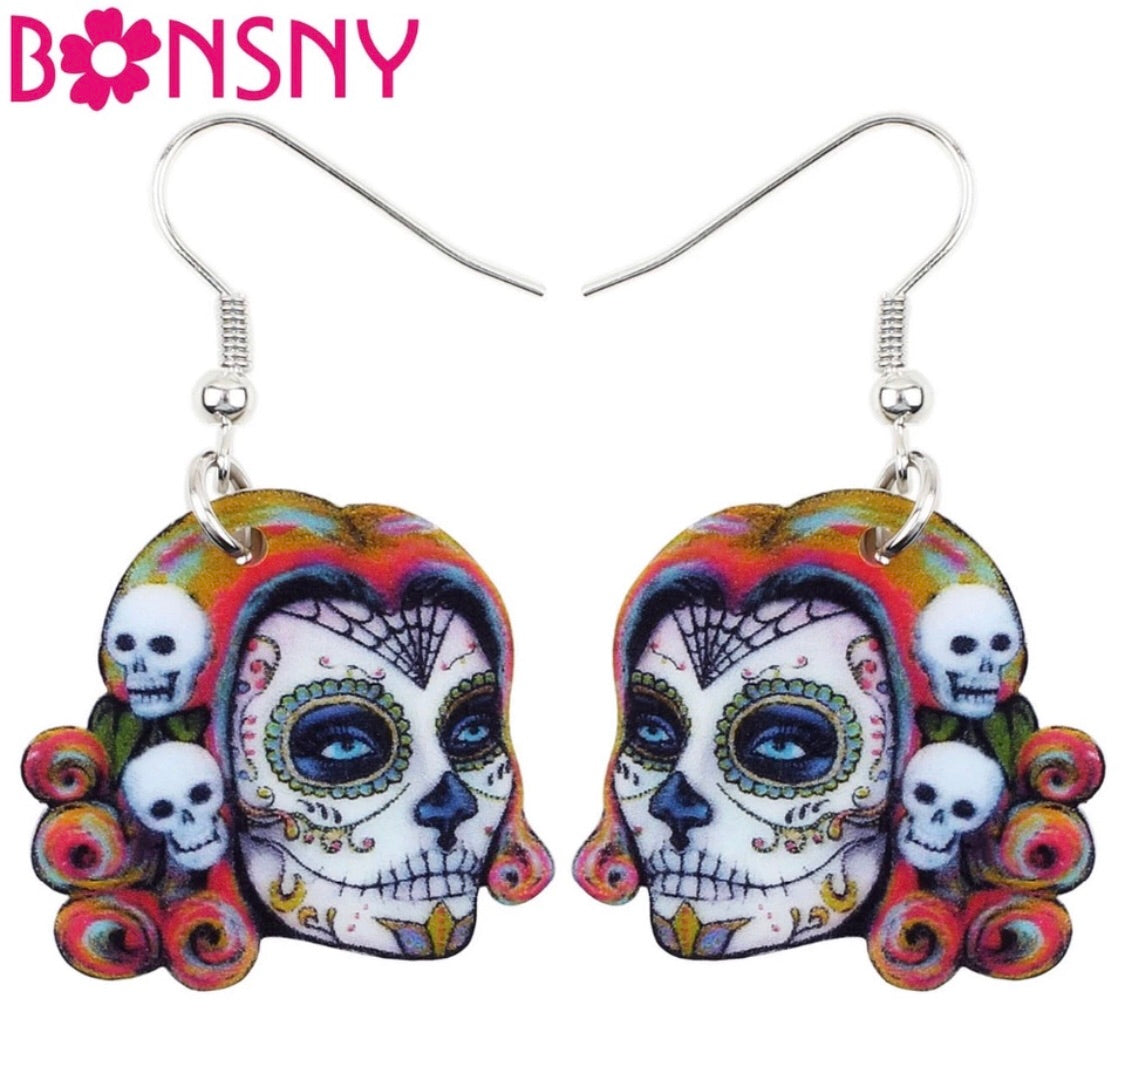 Bonsny Day of the dead earrings